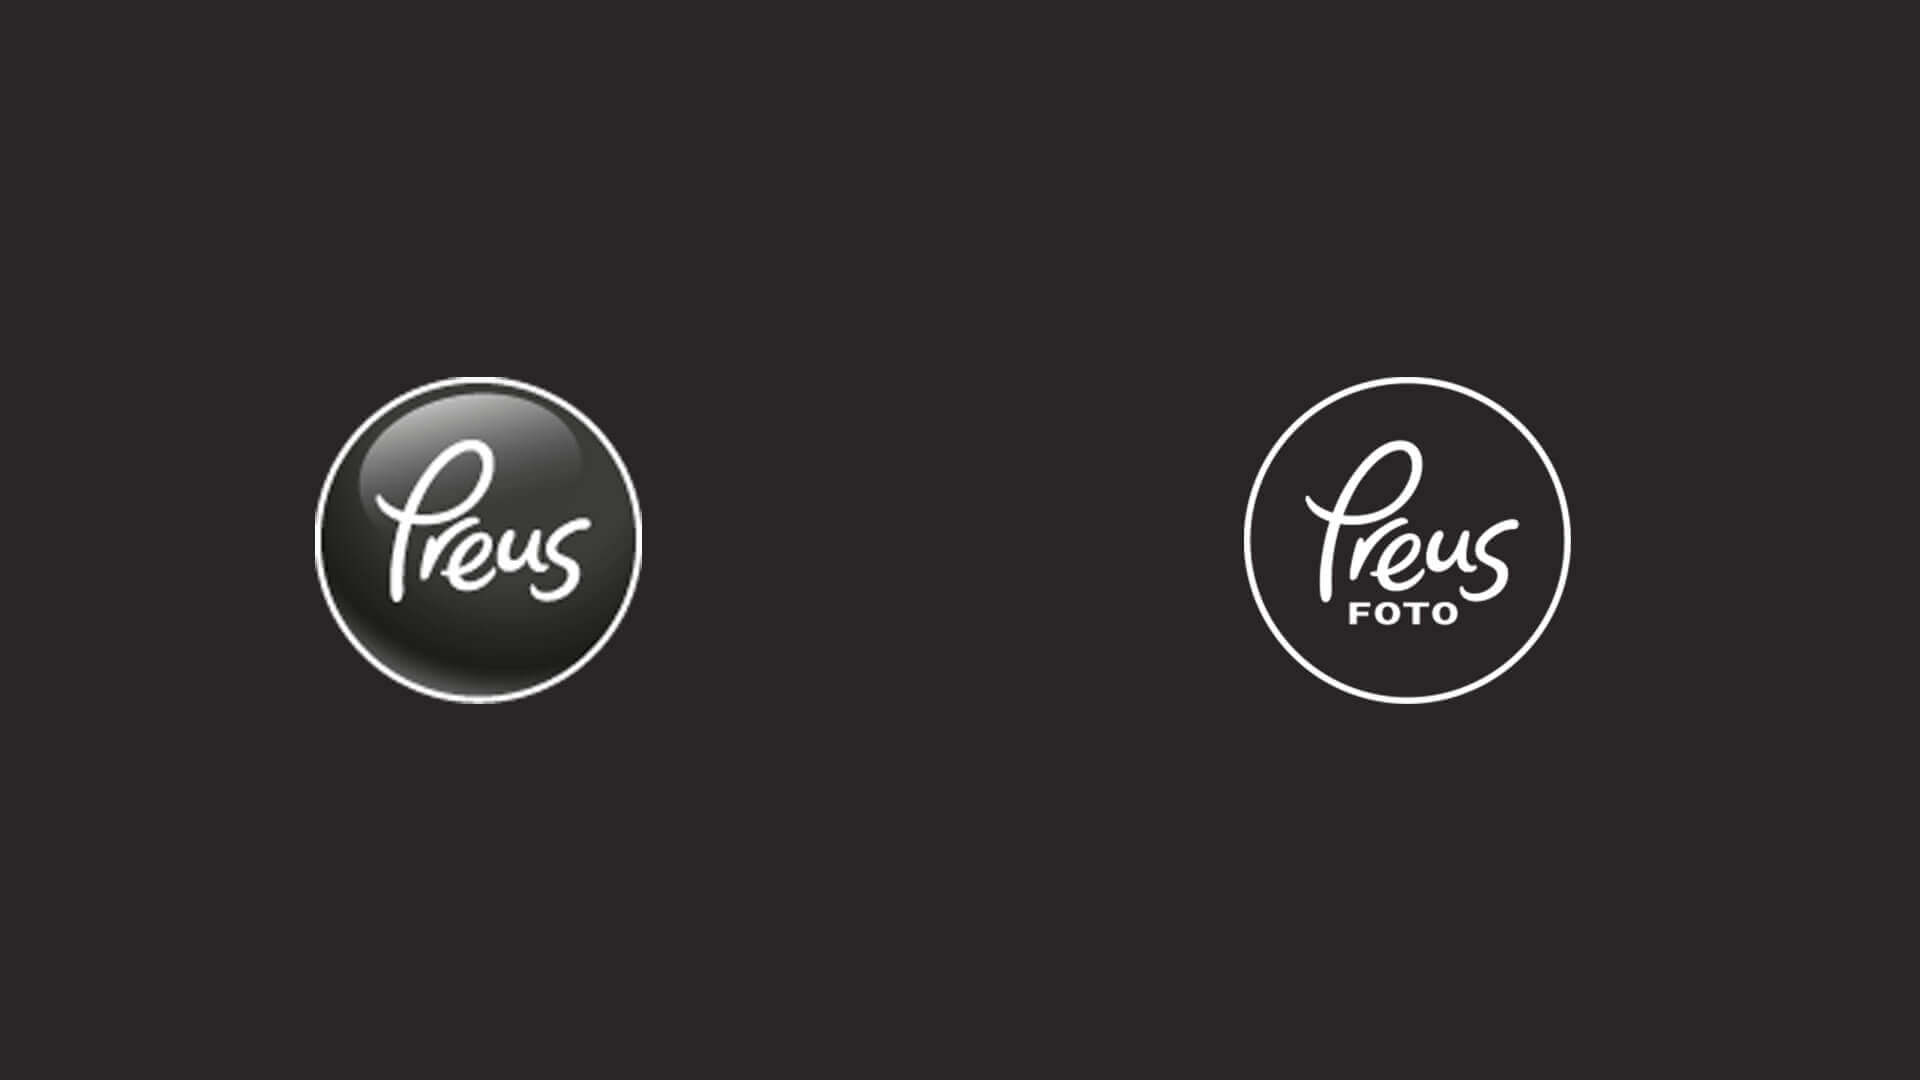 Before on the left and after on the right modernizing the logo design.